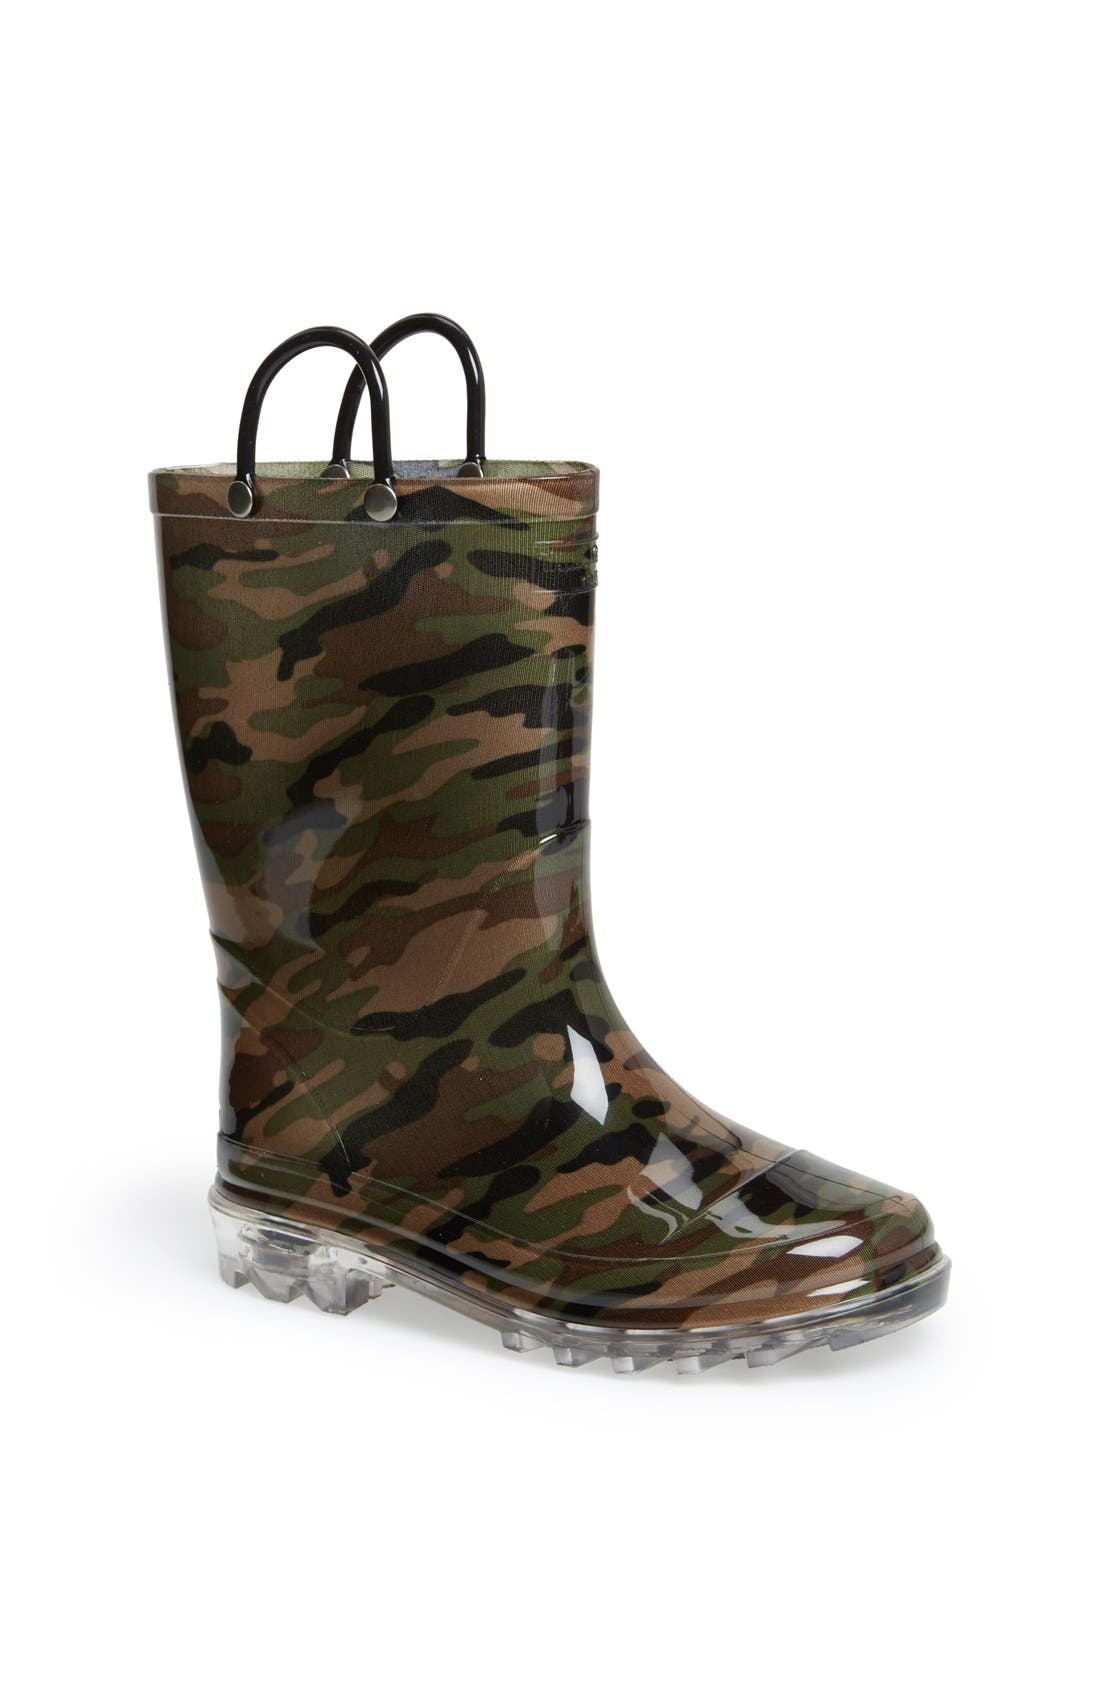 'Camo' Light-Up Rain Boot,                             Main thumbnail 1, color,                             Green